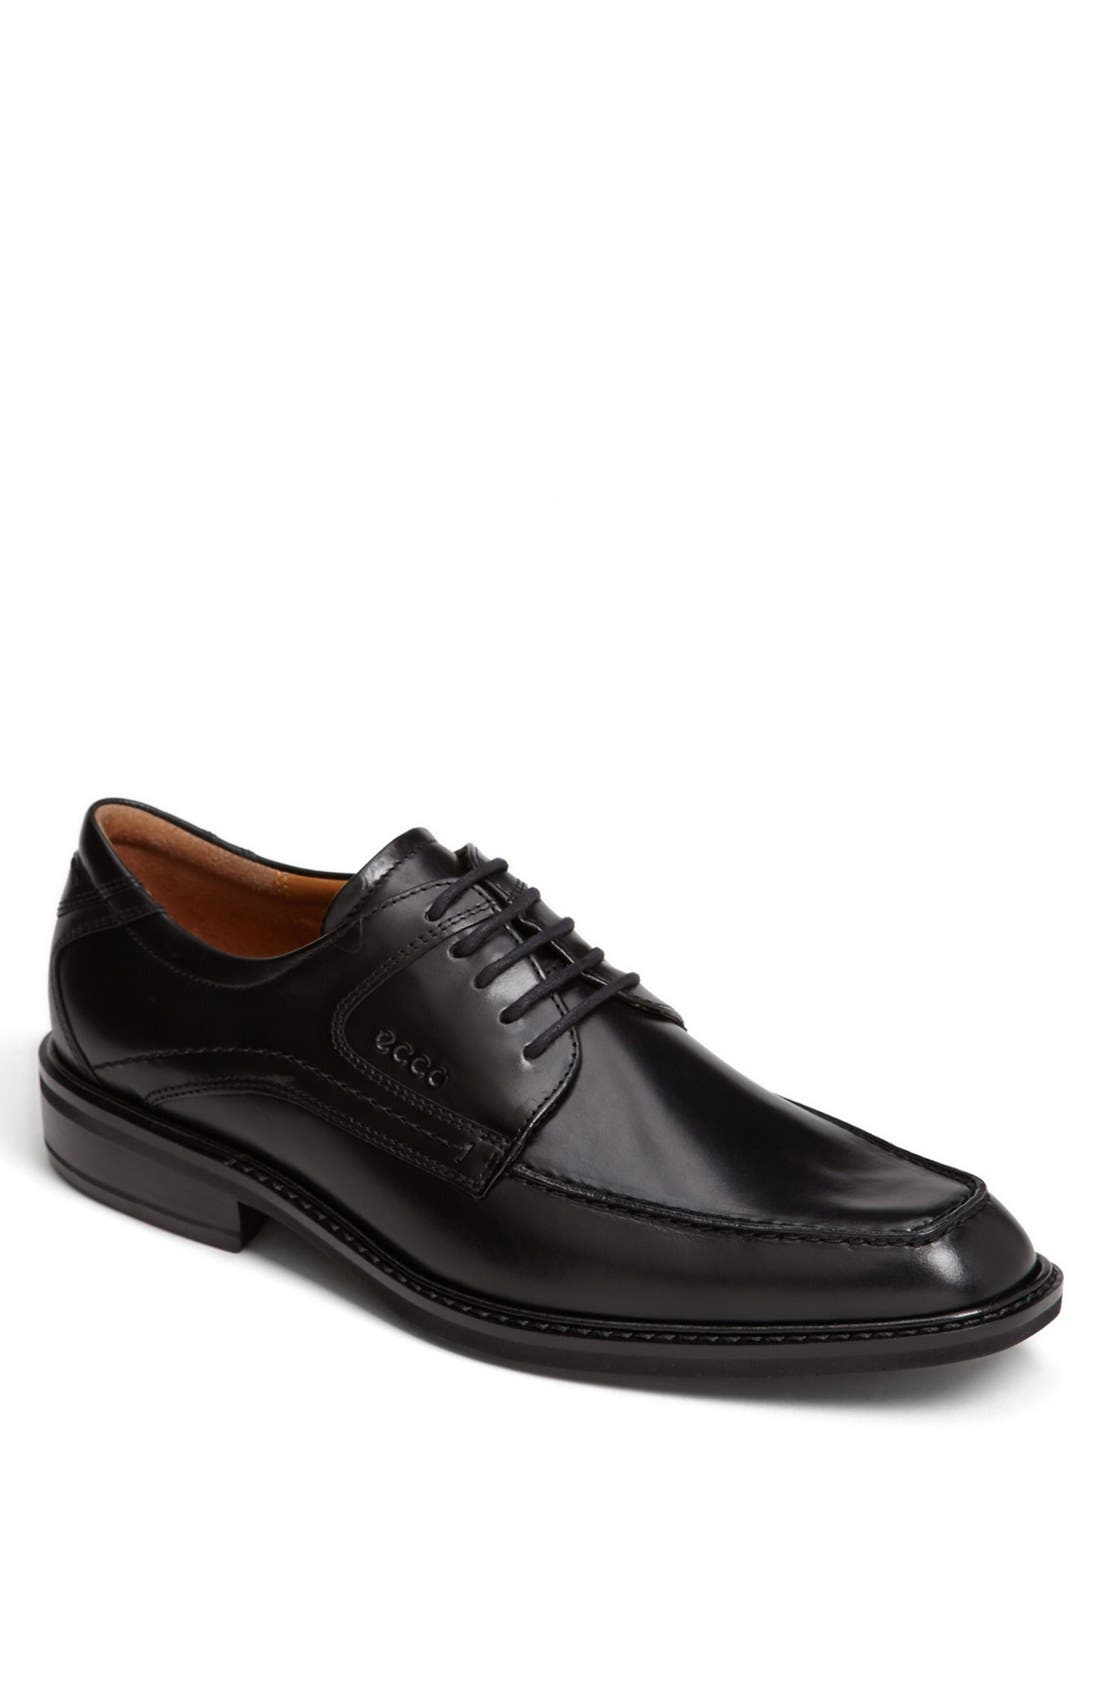 Alternate Image 1 Selected - ECCO 'Windsor' Apron Toe Derby (Men)